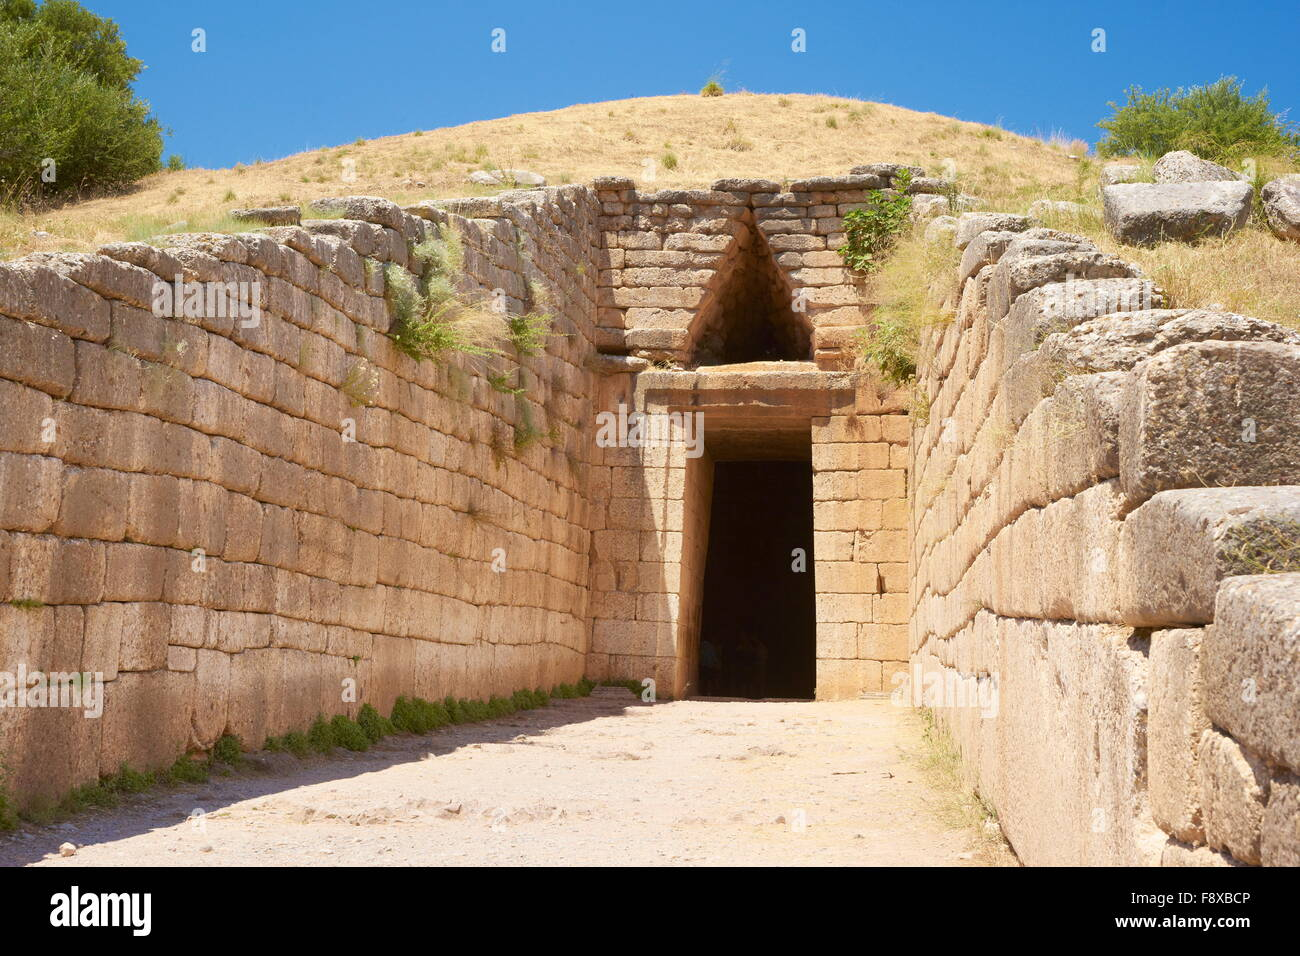 The Treasury of Atreus at the Archaeological Sites of Mycenae (The Tomb of Agamemnon), Greece - Stock Image